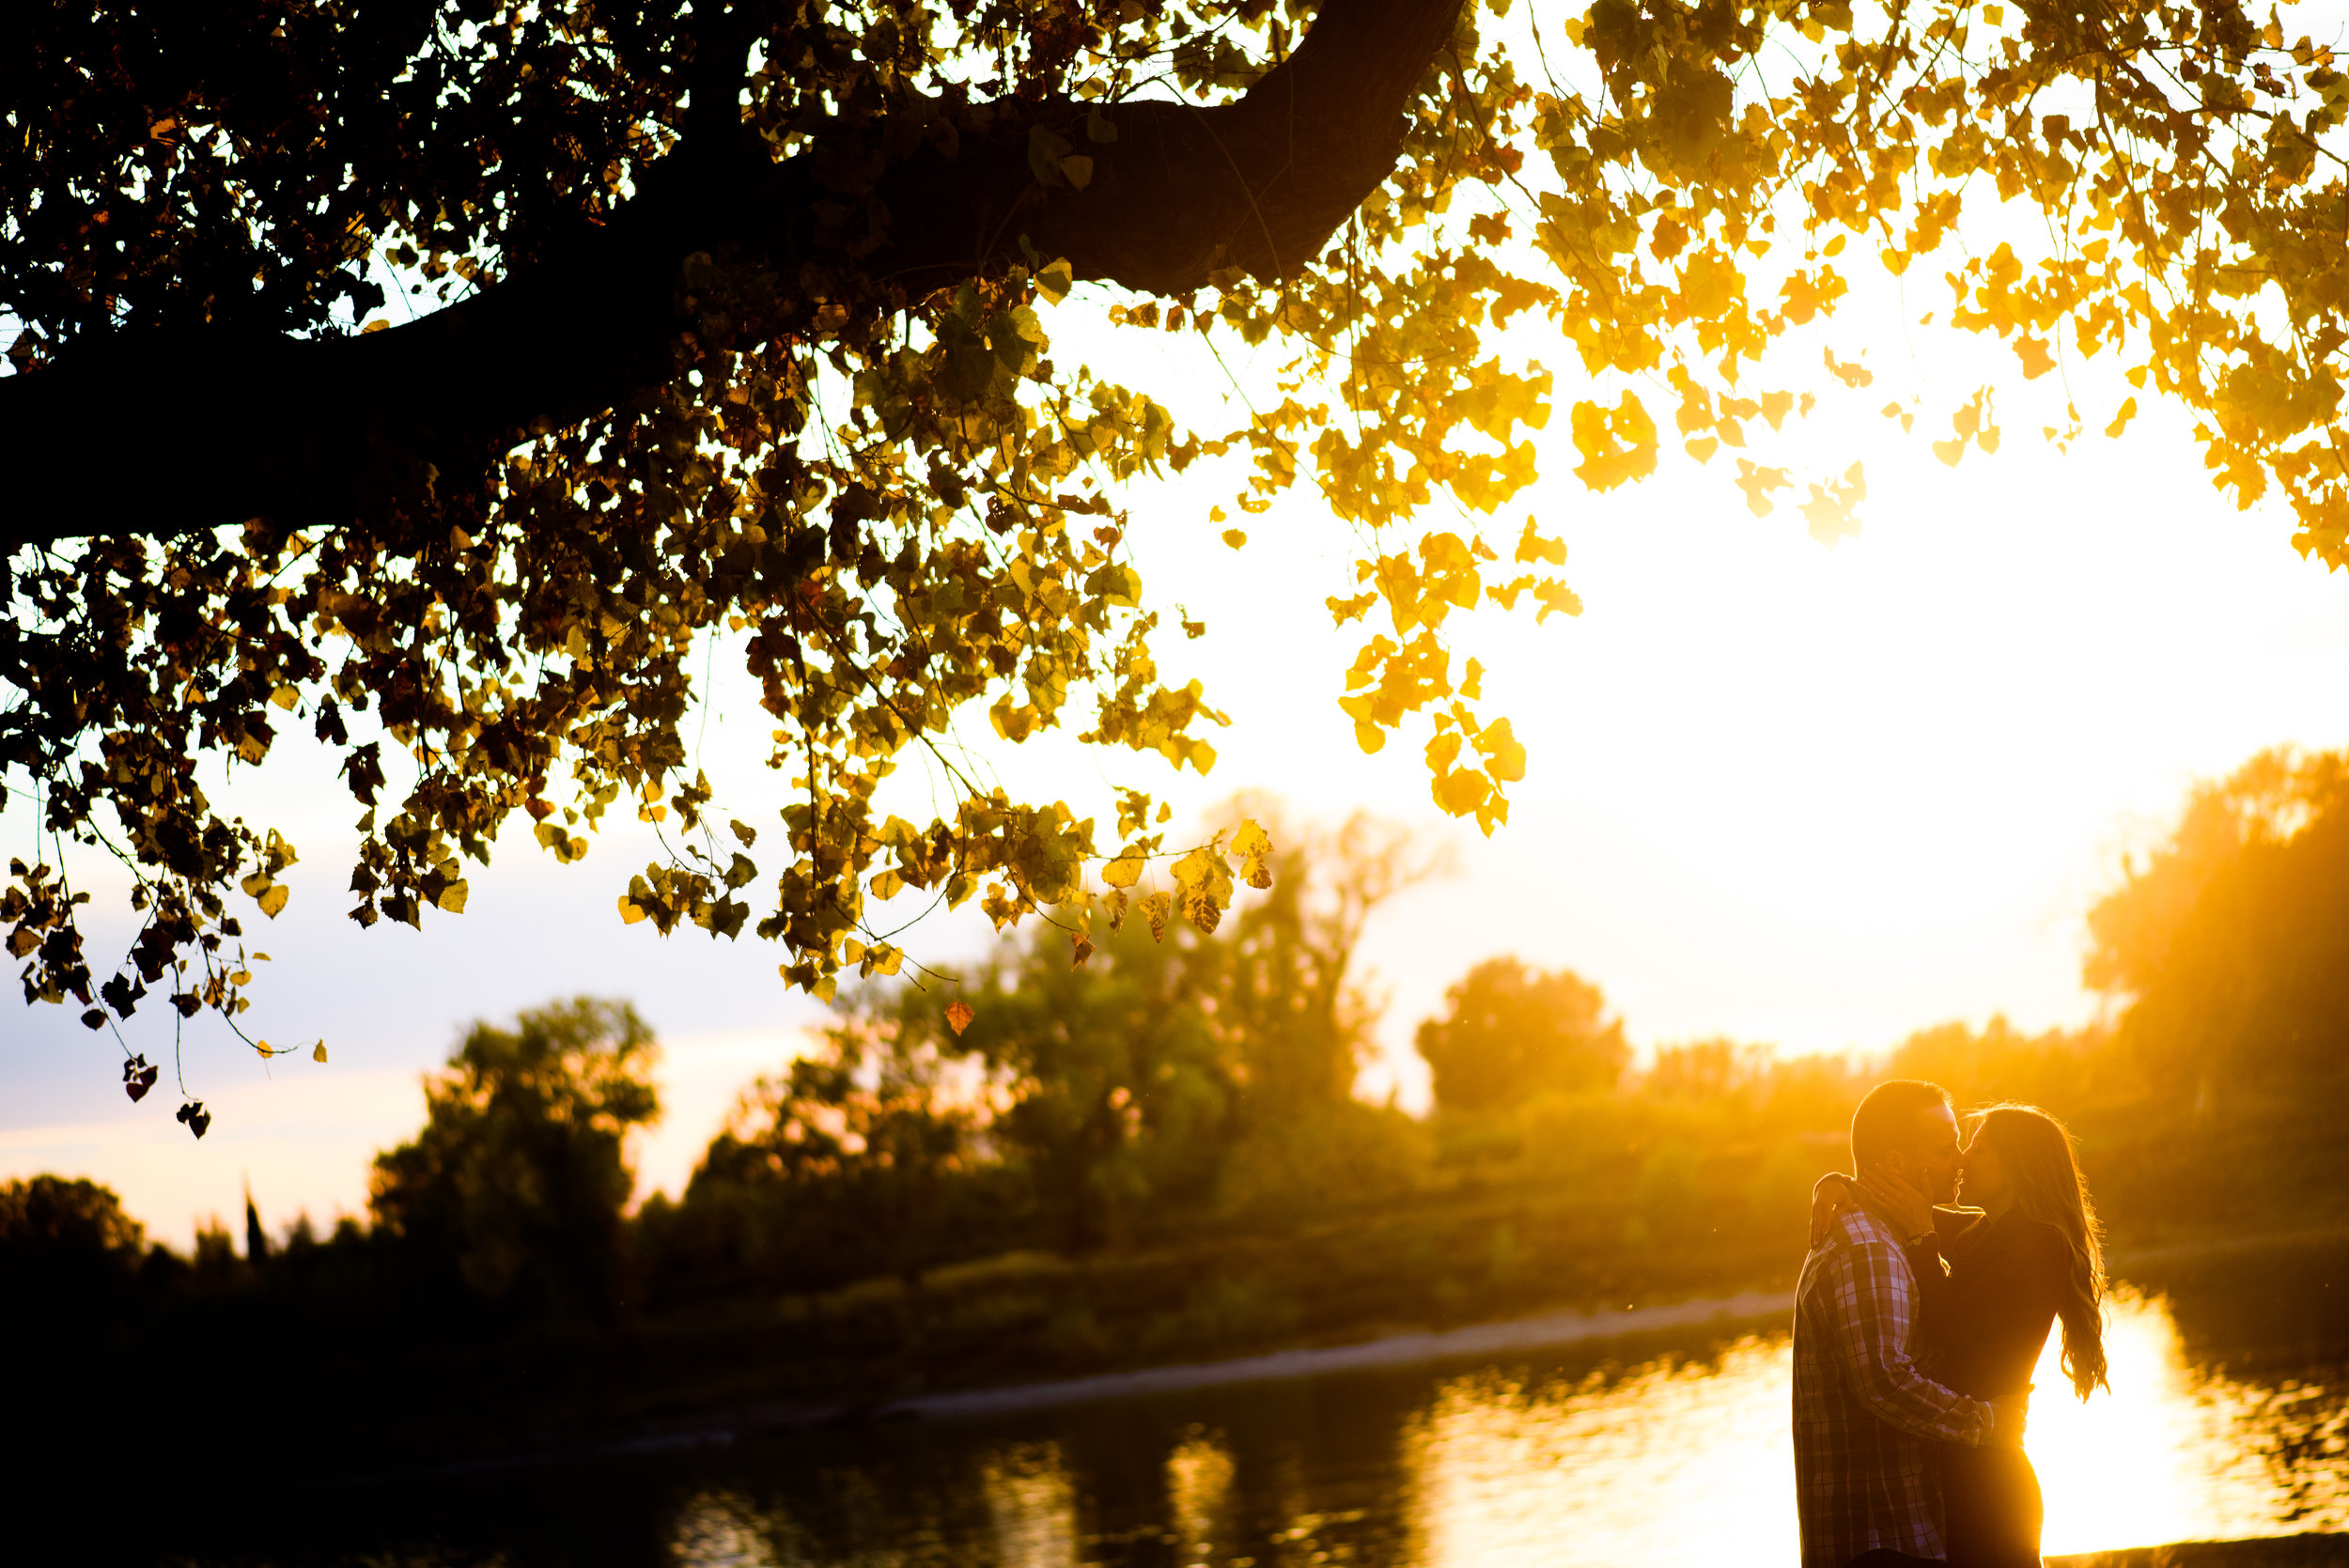 nicole-luke-012-sacramento-engagement-wedding-photographer-katherine-nicole-photography.JPG